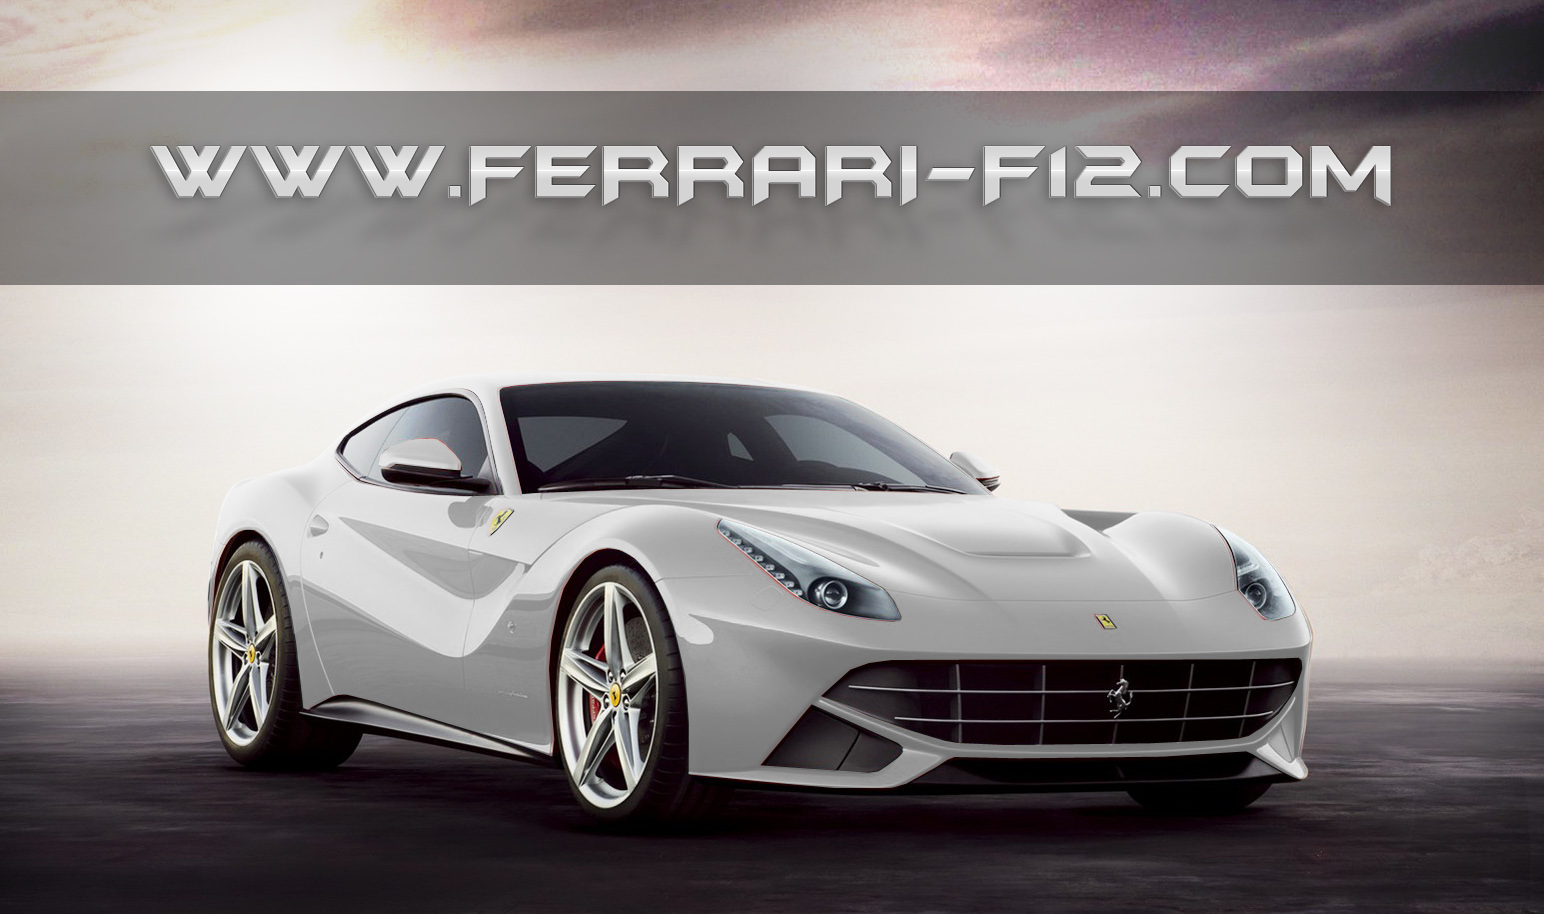 Ferrari F12 Berlinetta white #3